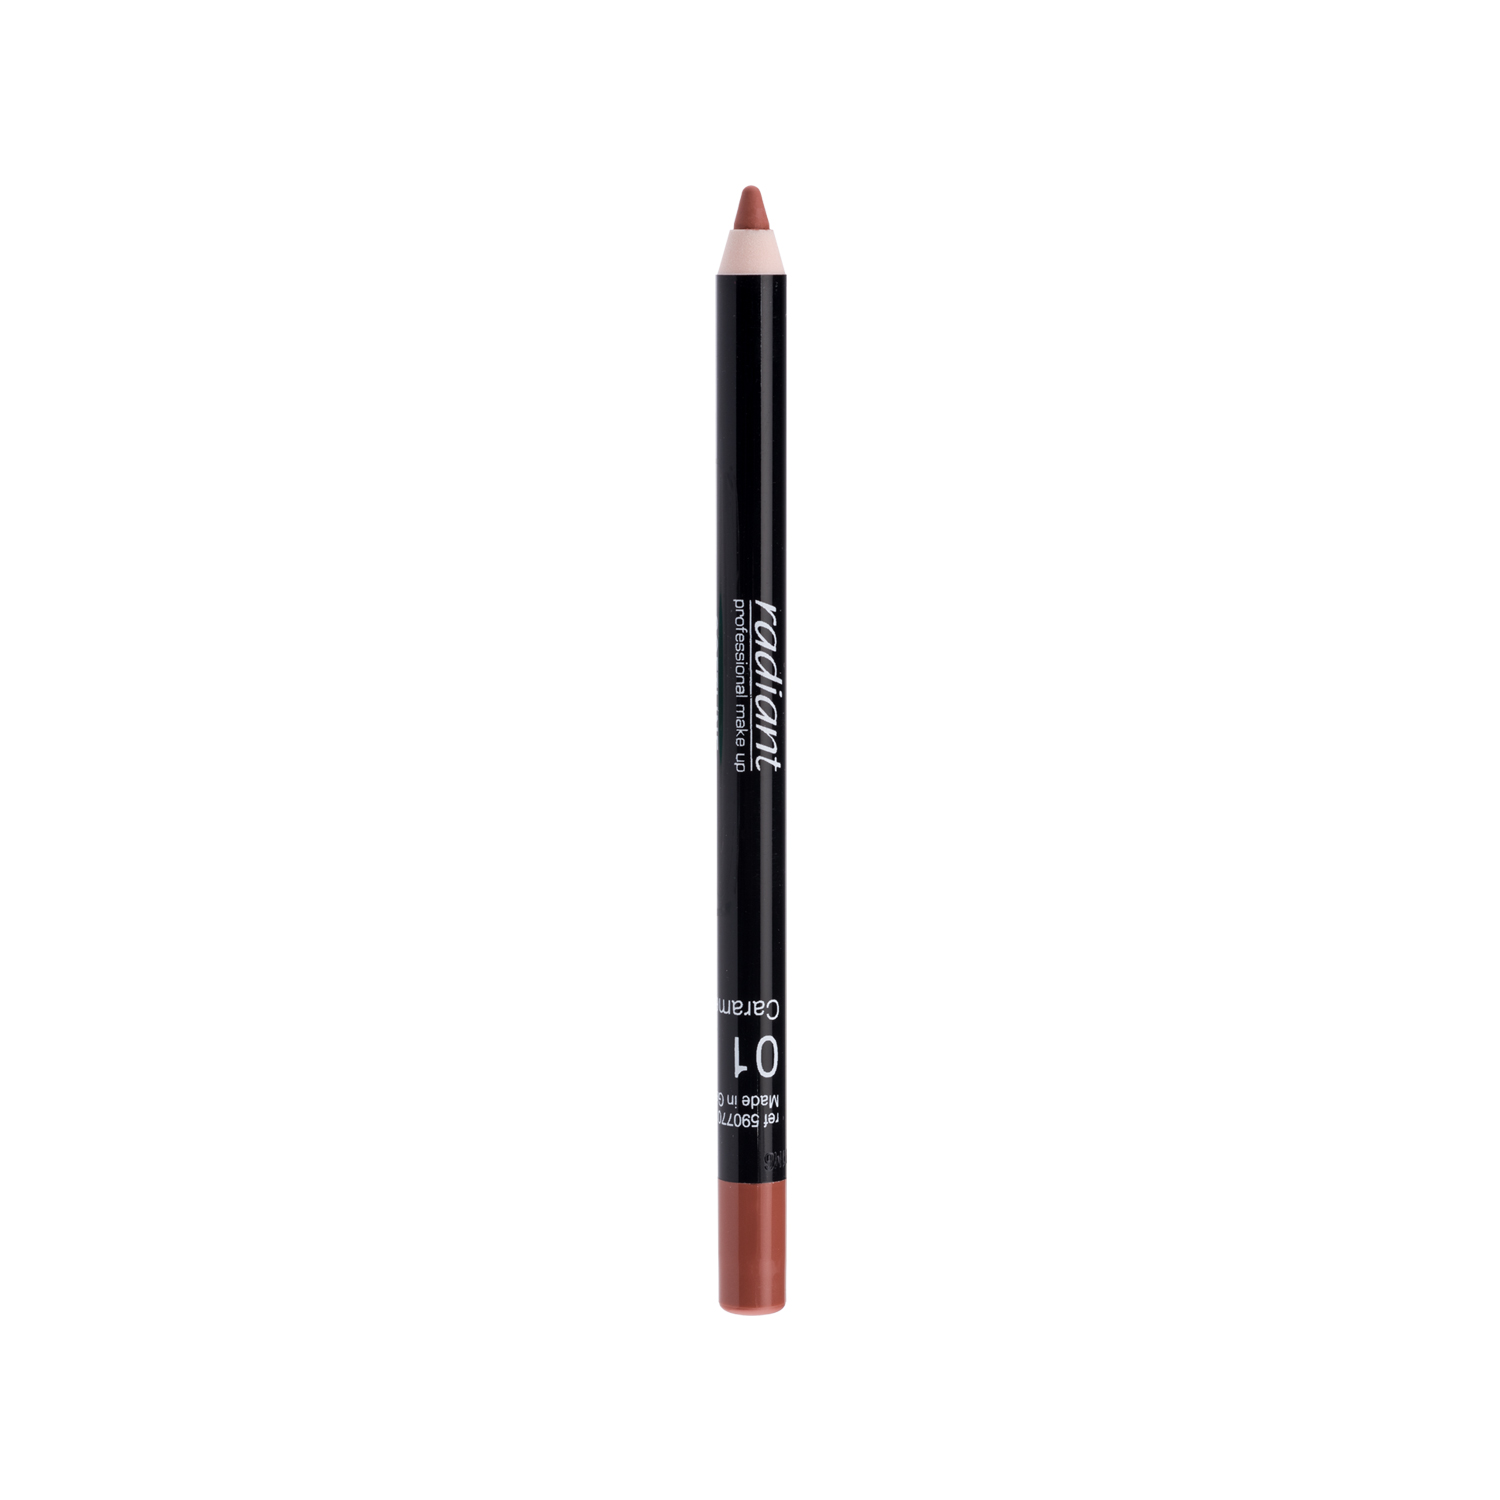 SOFTLINE WATERPROOF LIP PENCIL (01 Caramel)